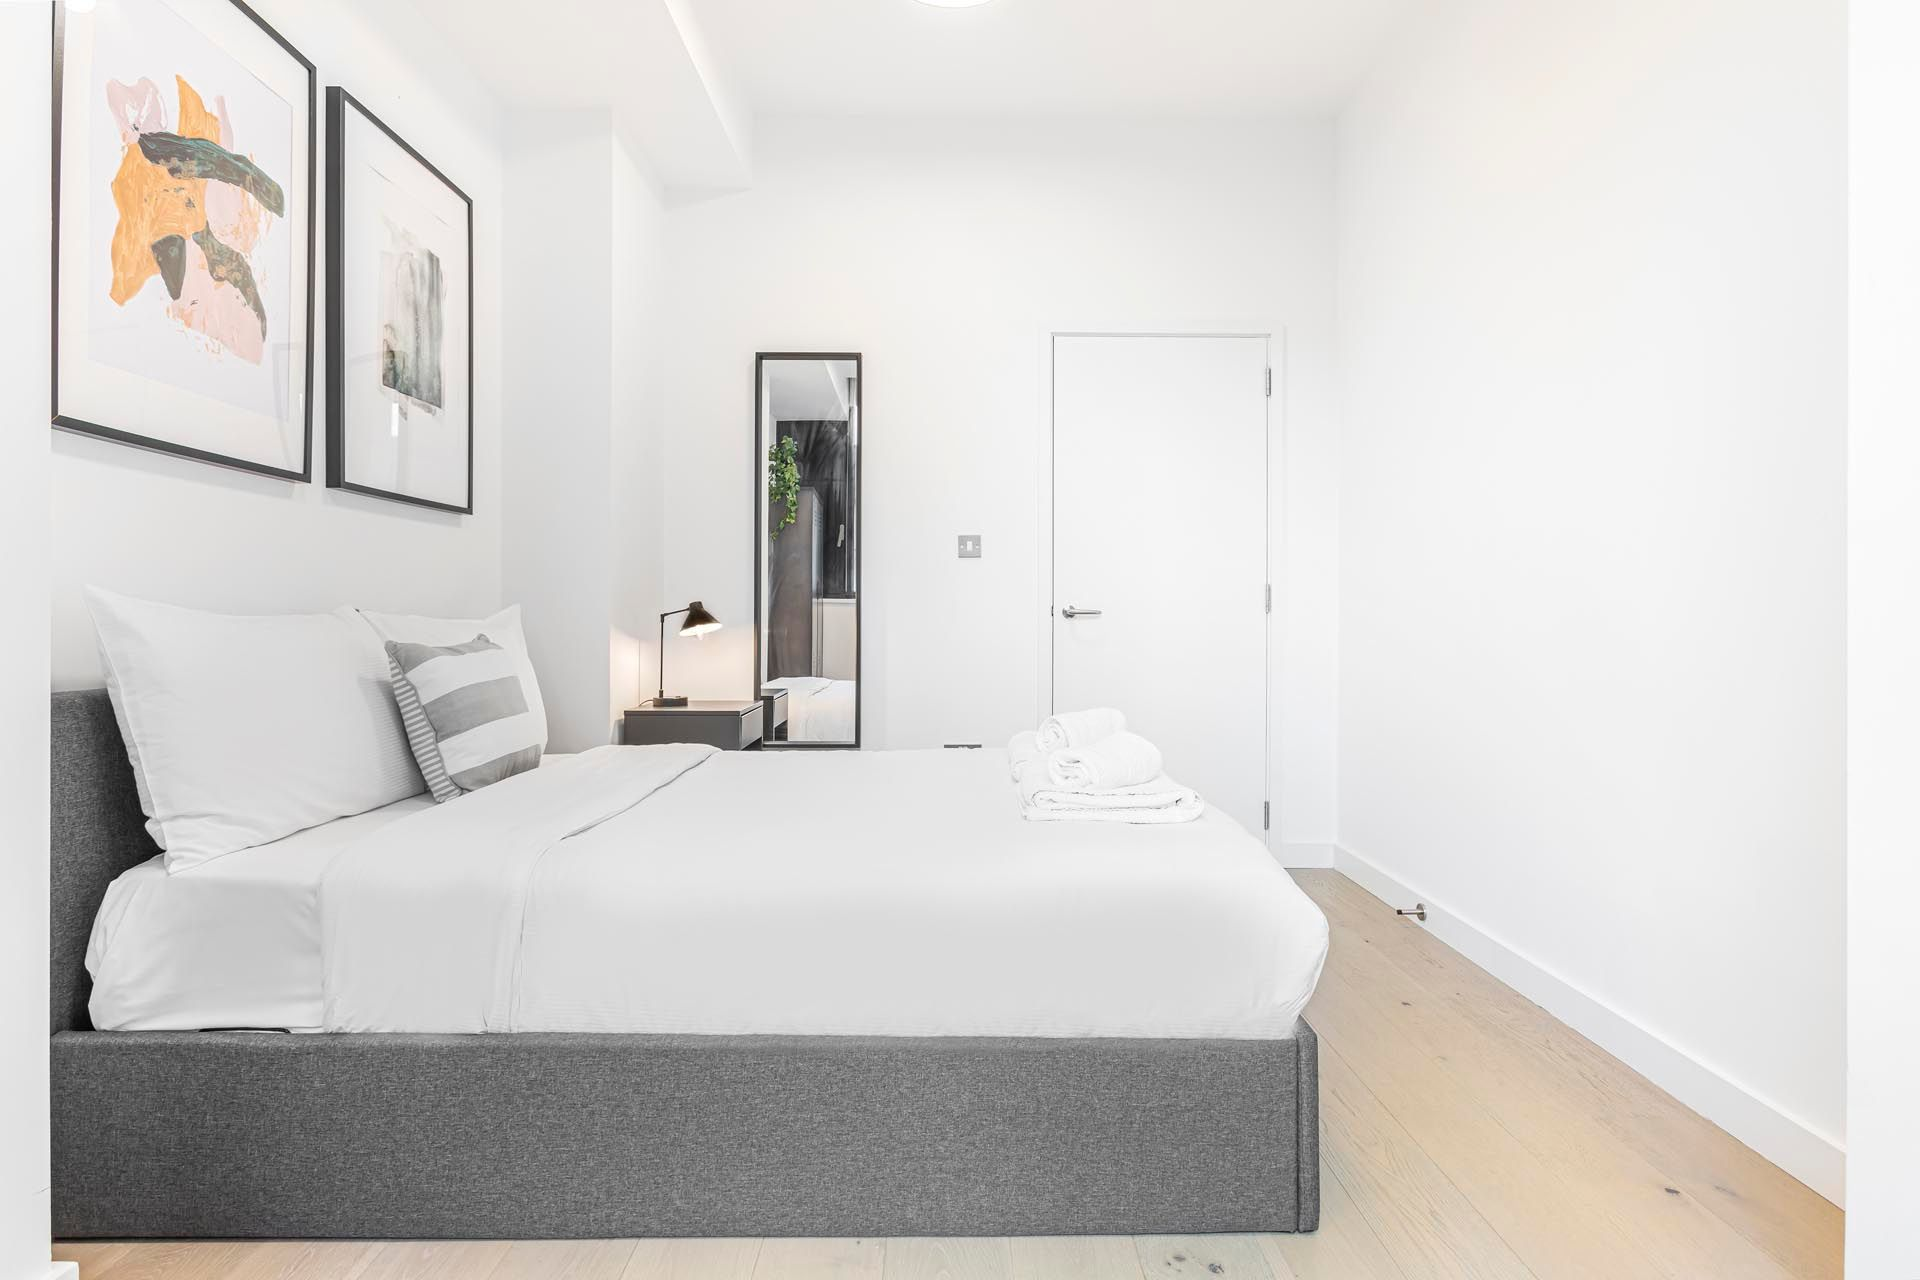 1 Bedroom apartment to rent in London HIL-HH-0801